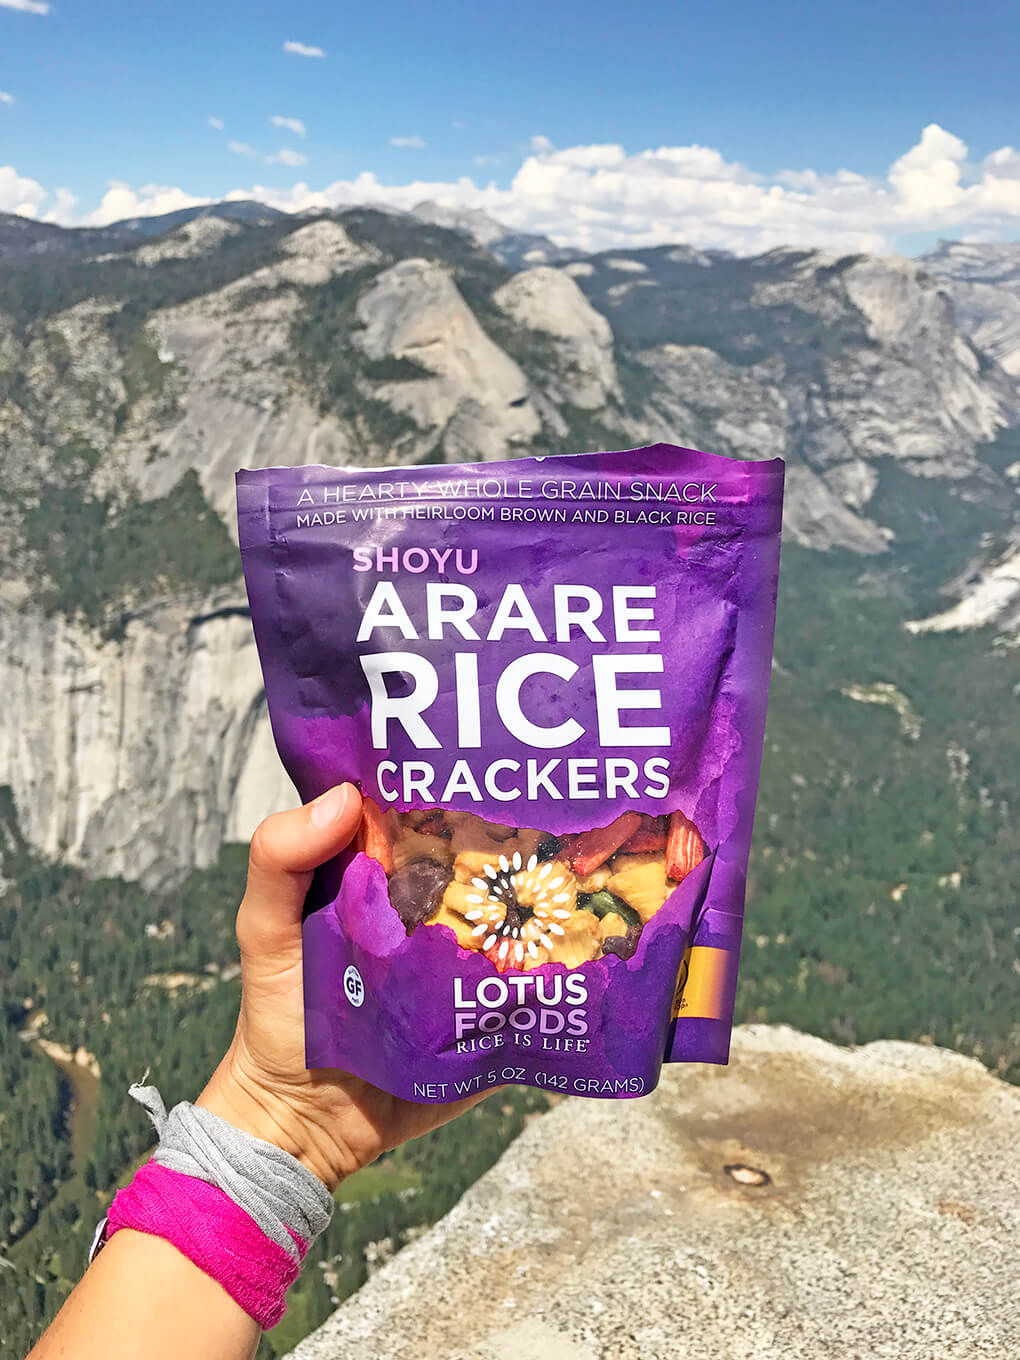 Hiking Yosemite sarahkayhoffman.com Snacks Shoyu Lotus Foods Arare Crackers